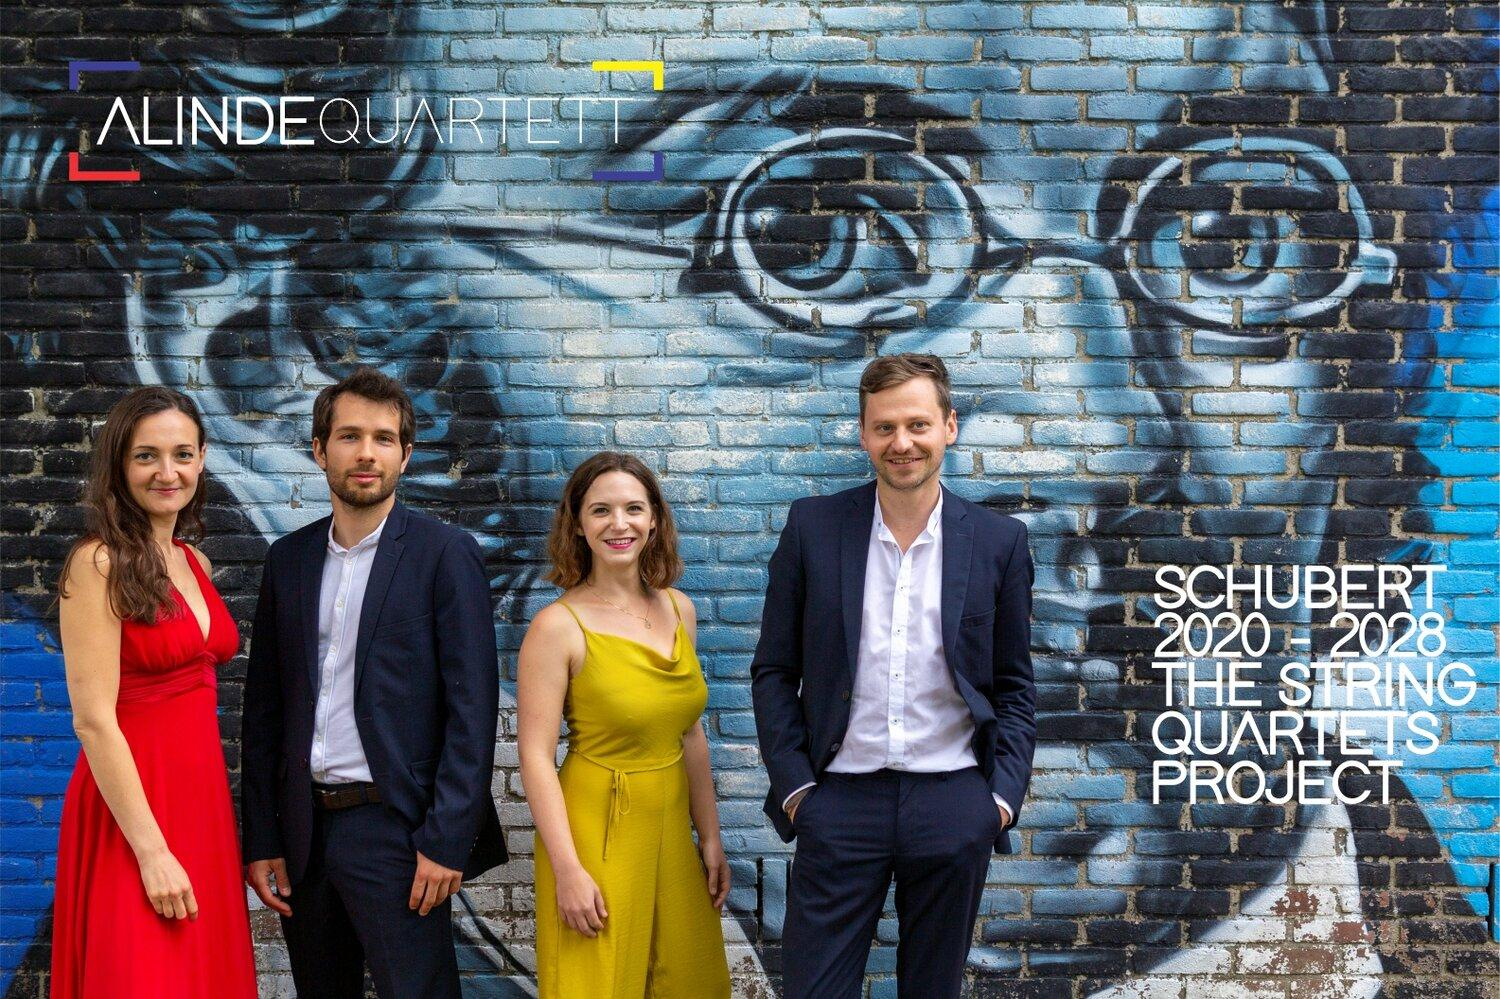 alinde quartett - schubert project